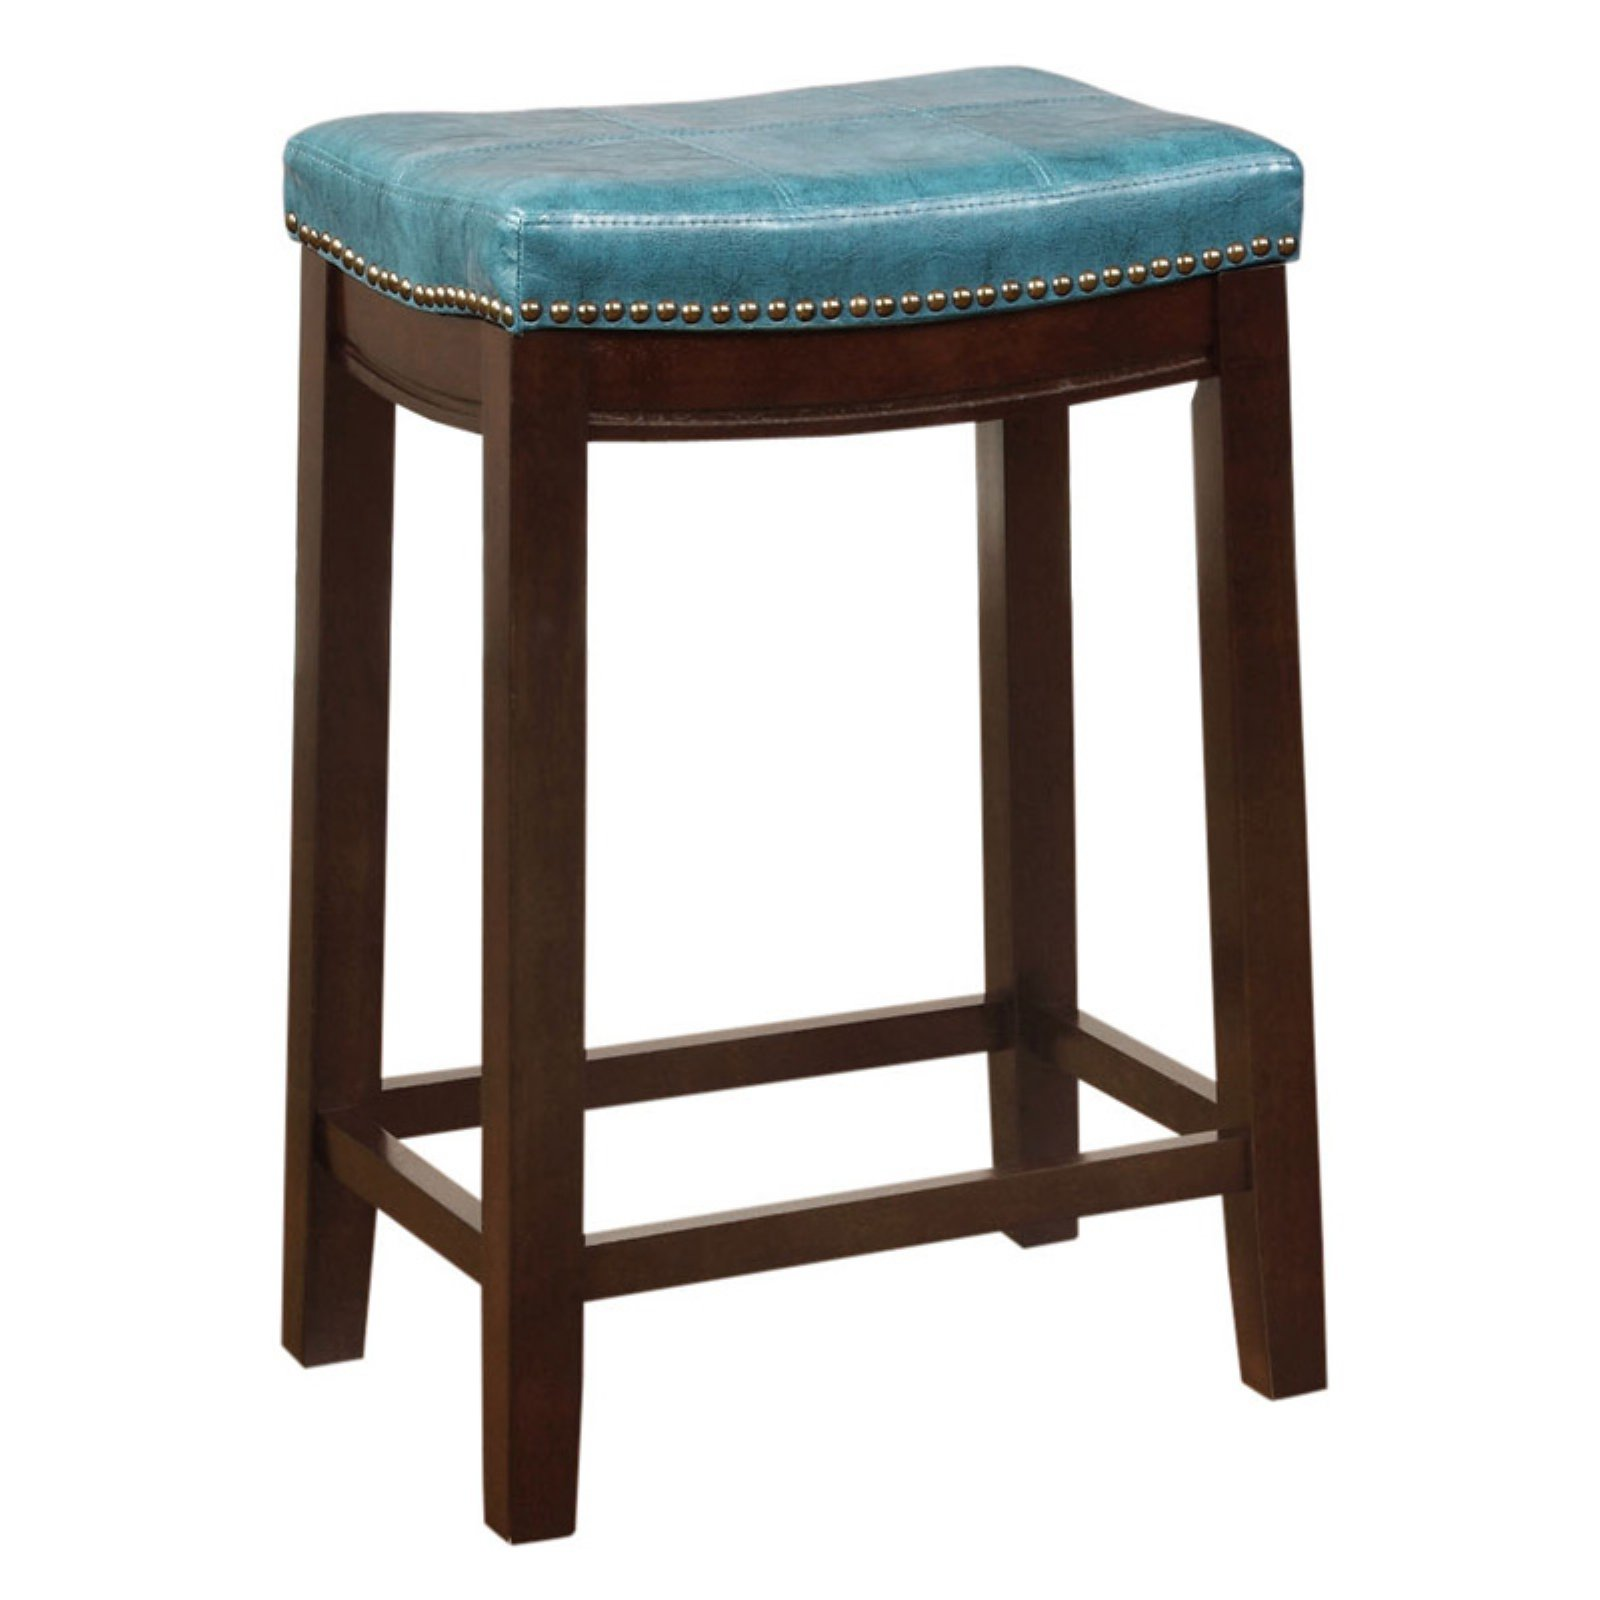 Linon Claridge Backless Counter Stool Blue 24 Inch Seat